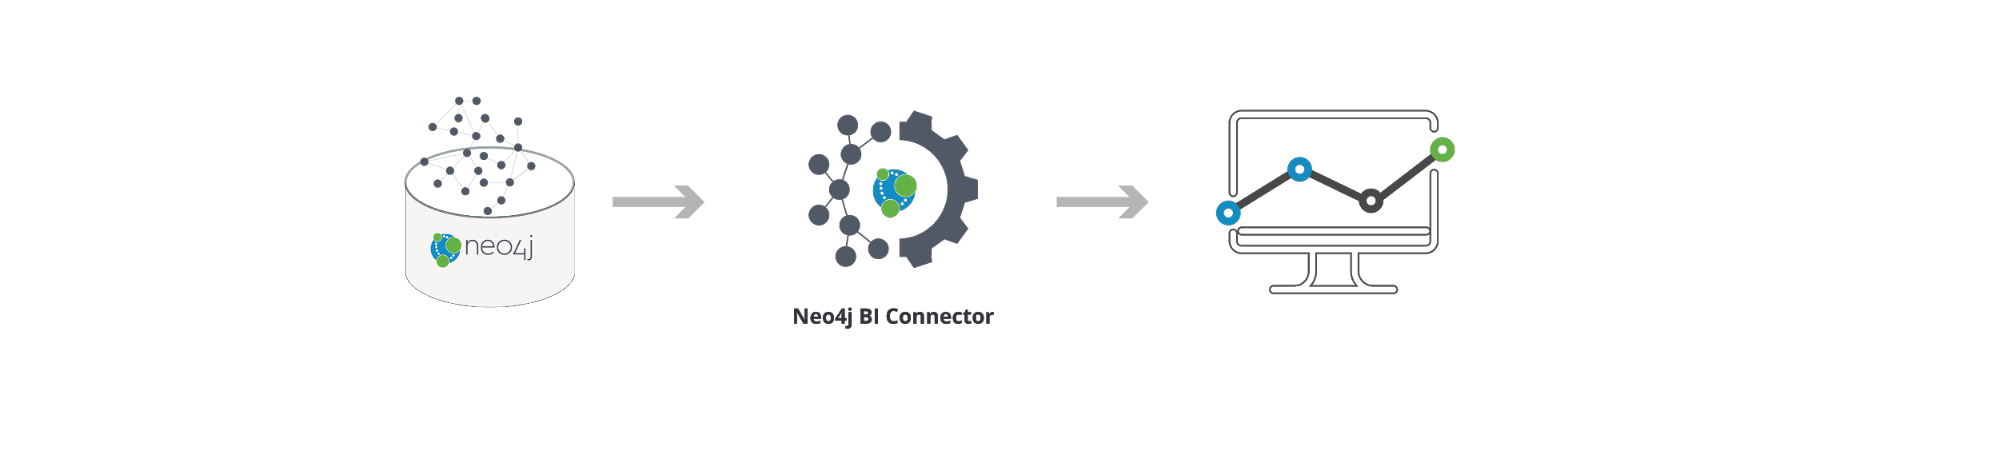 Discover the benefits of Neo4j BI Connector.